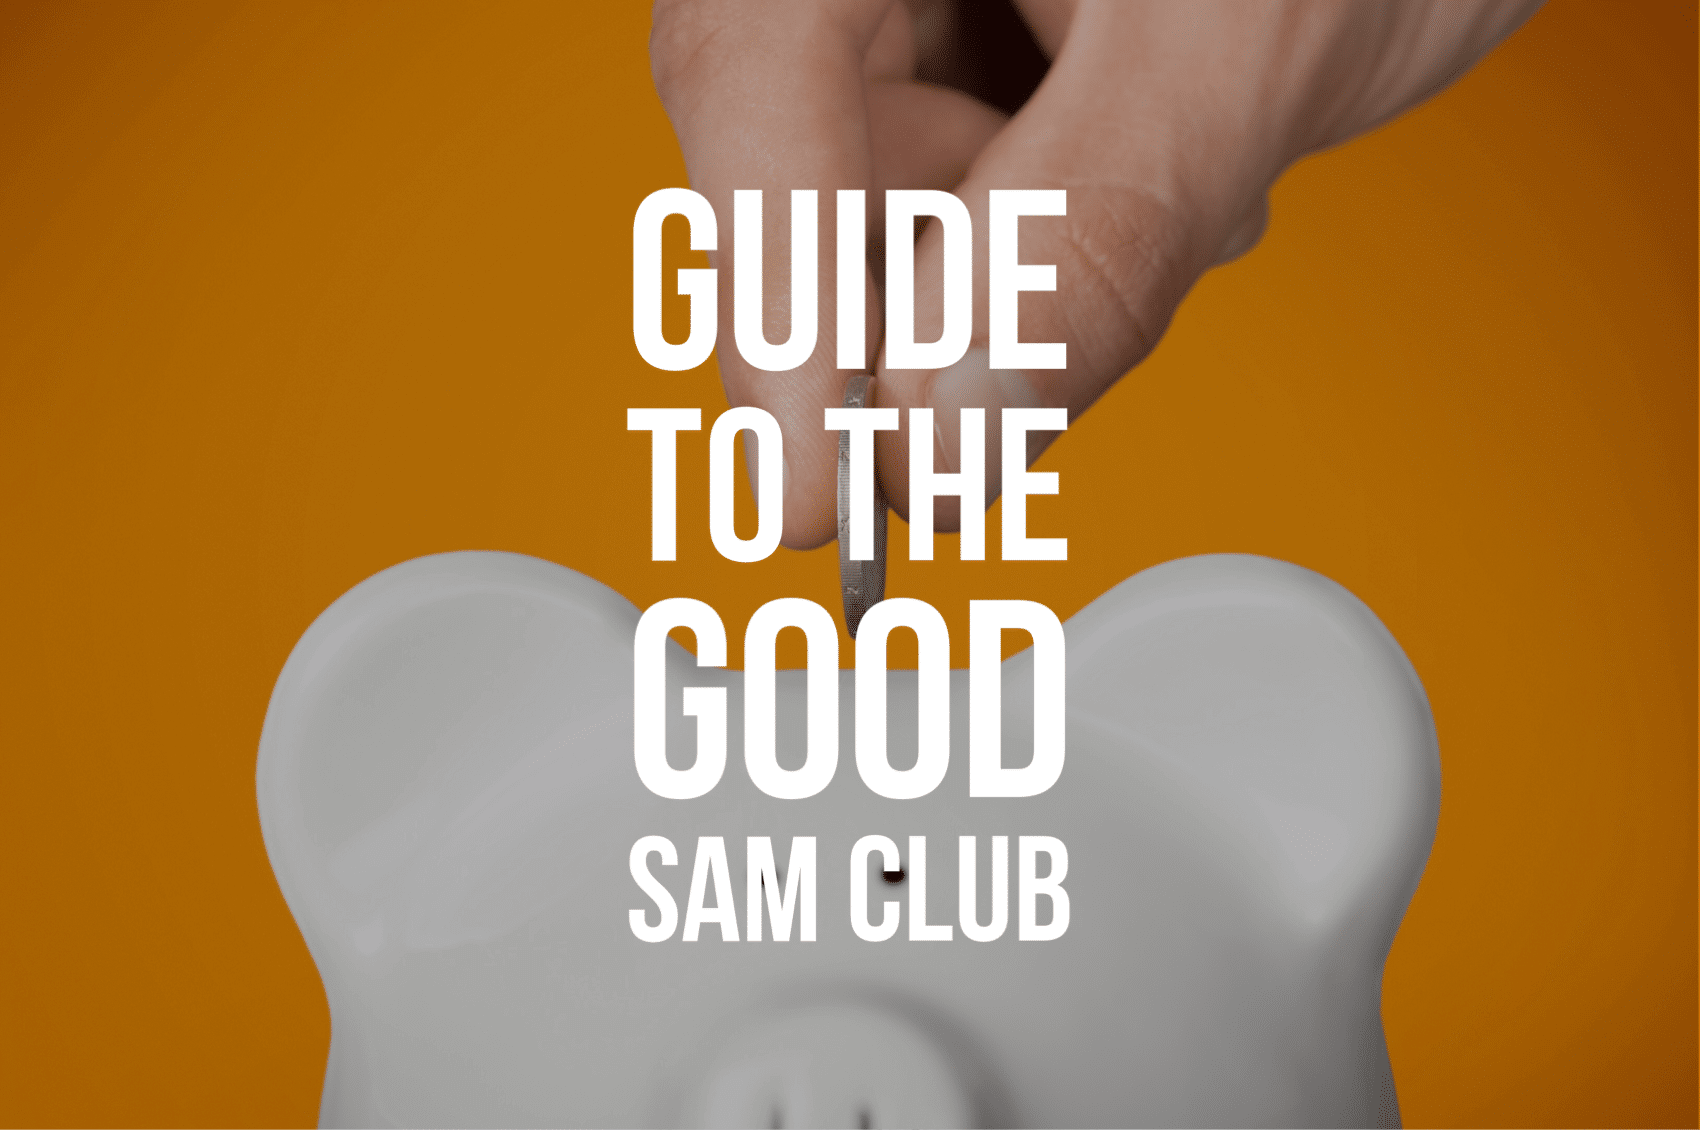 Guide to the Good Sam Club